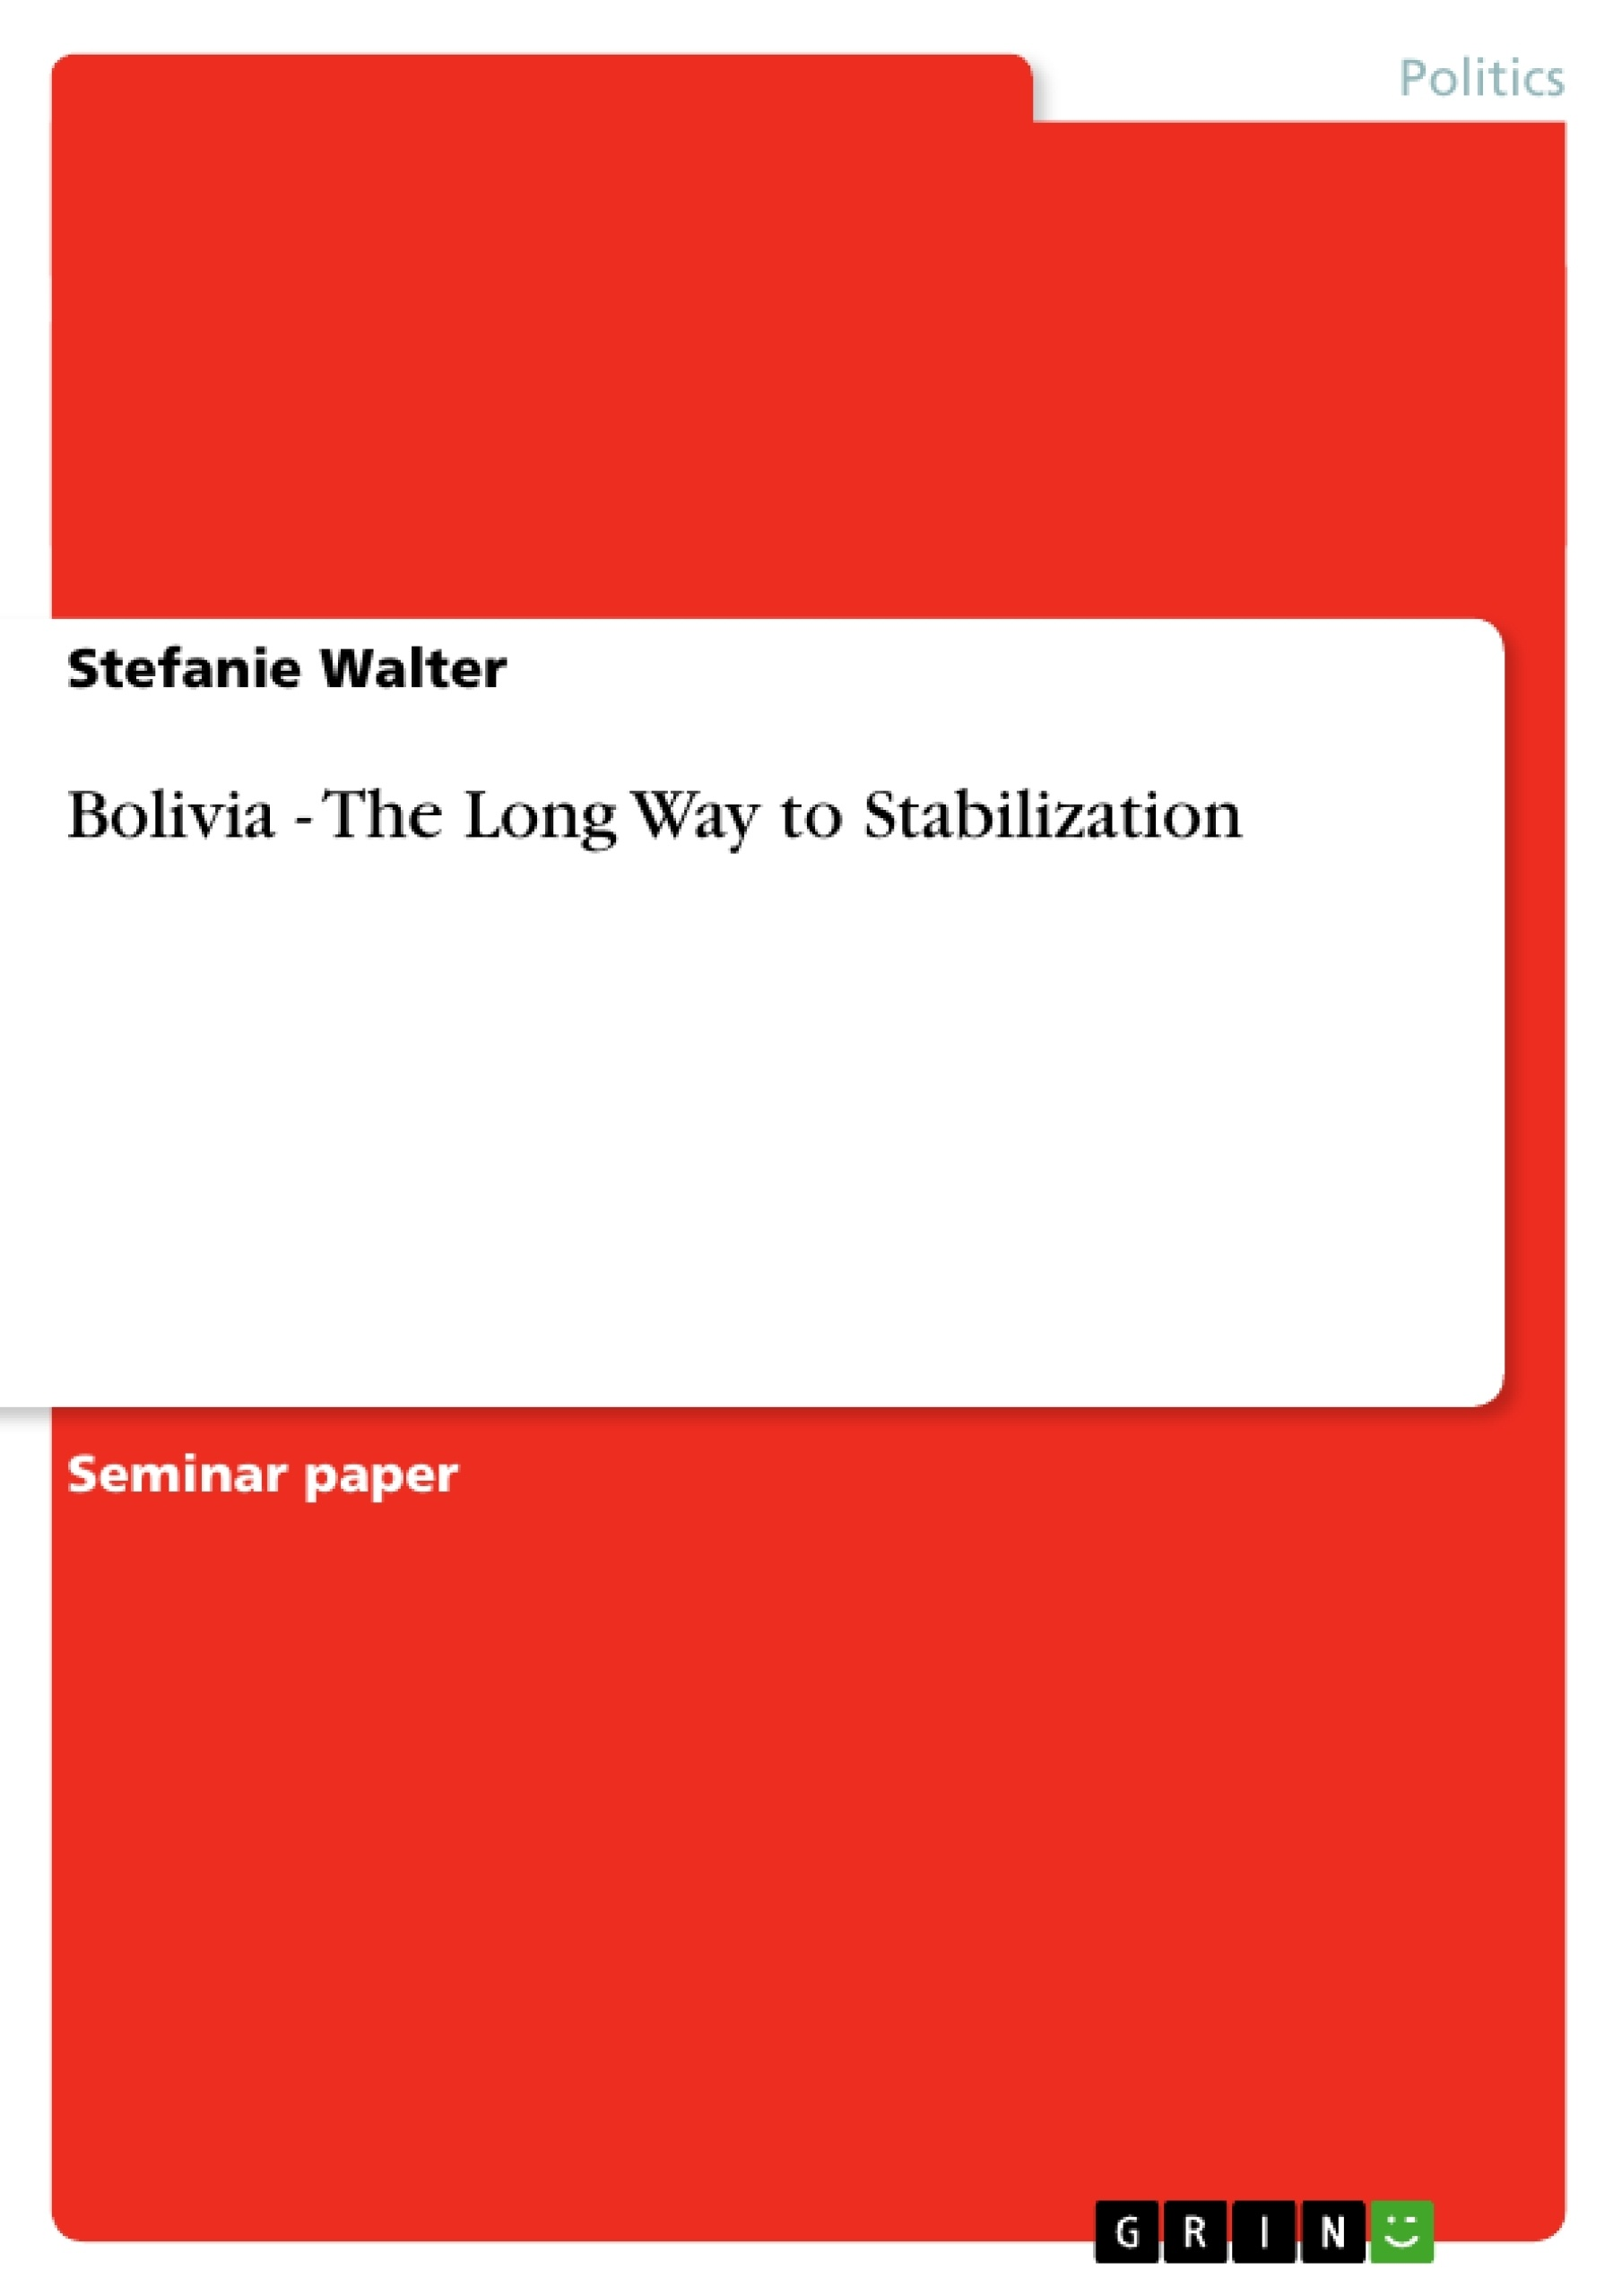 Title: Bolivia - The Long Way to Stabilization